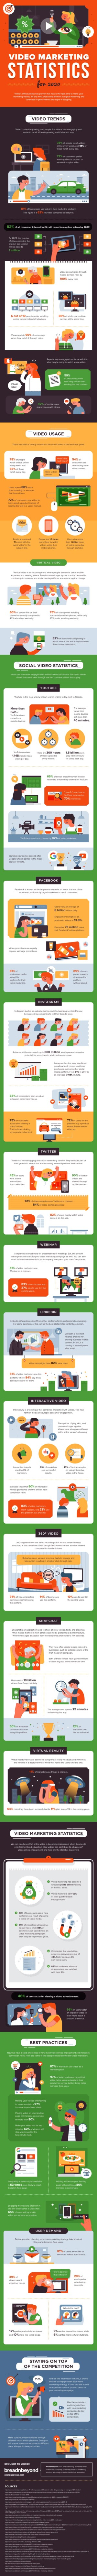 Video Marketing Statistics for 2020: The Latest Trends